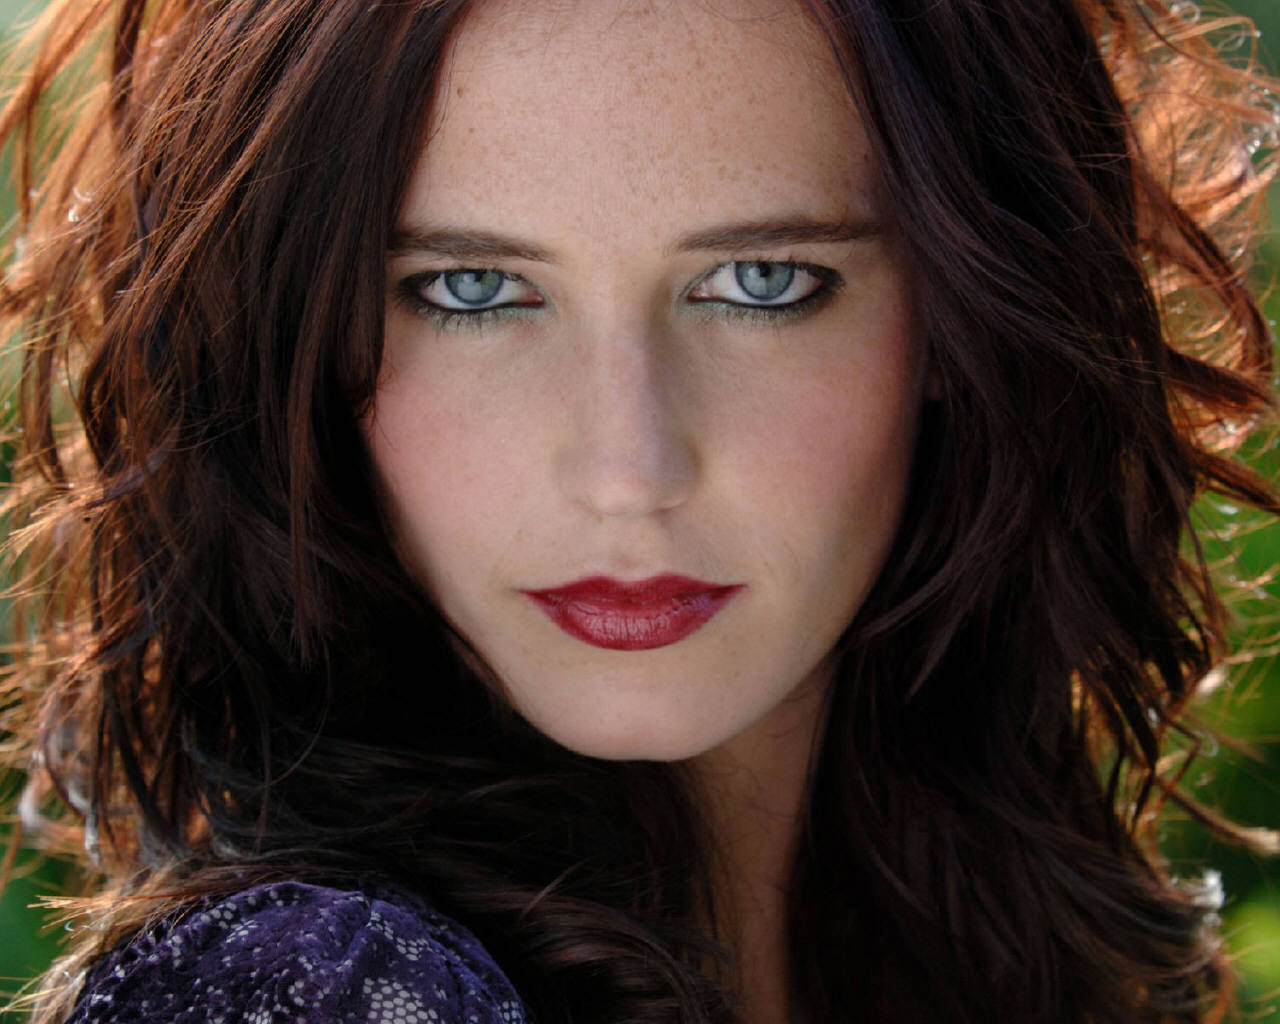 Eva Green - Eva Green Wallpaper (242728) - Fanpop Eva Green Images